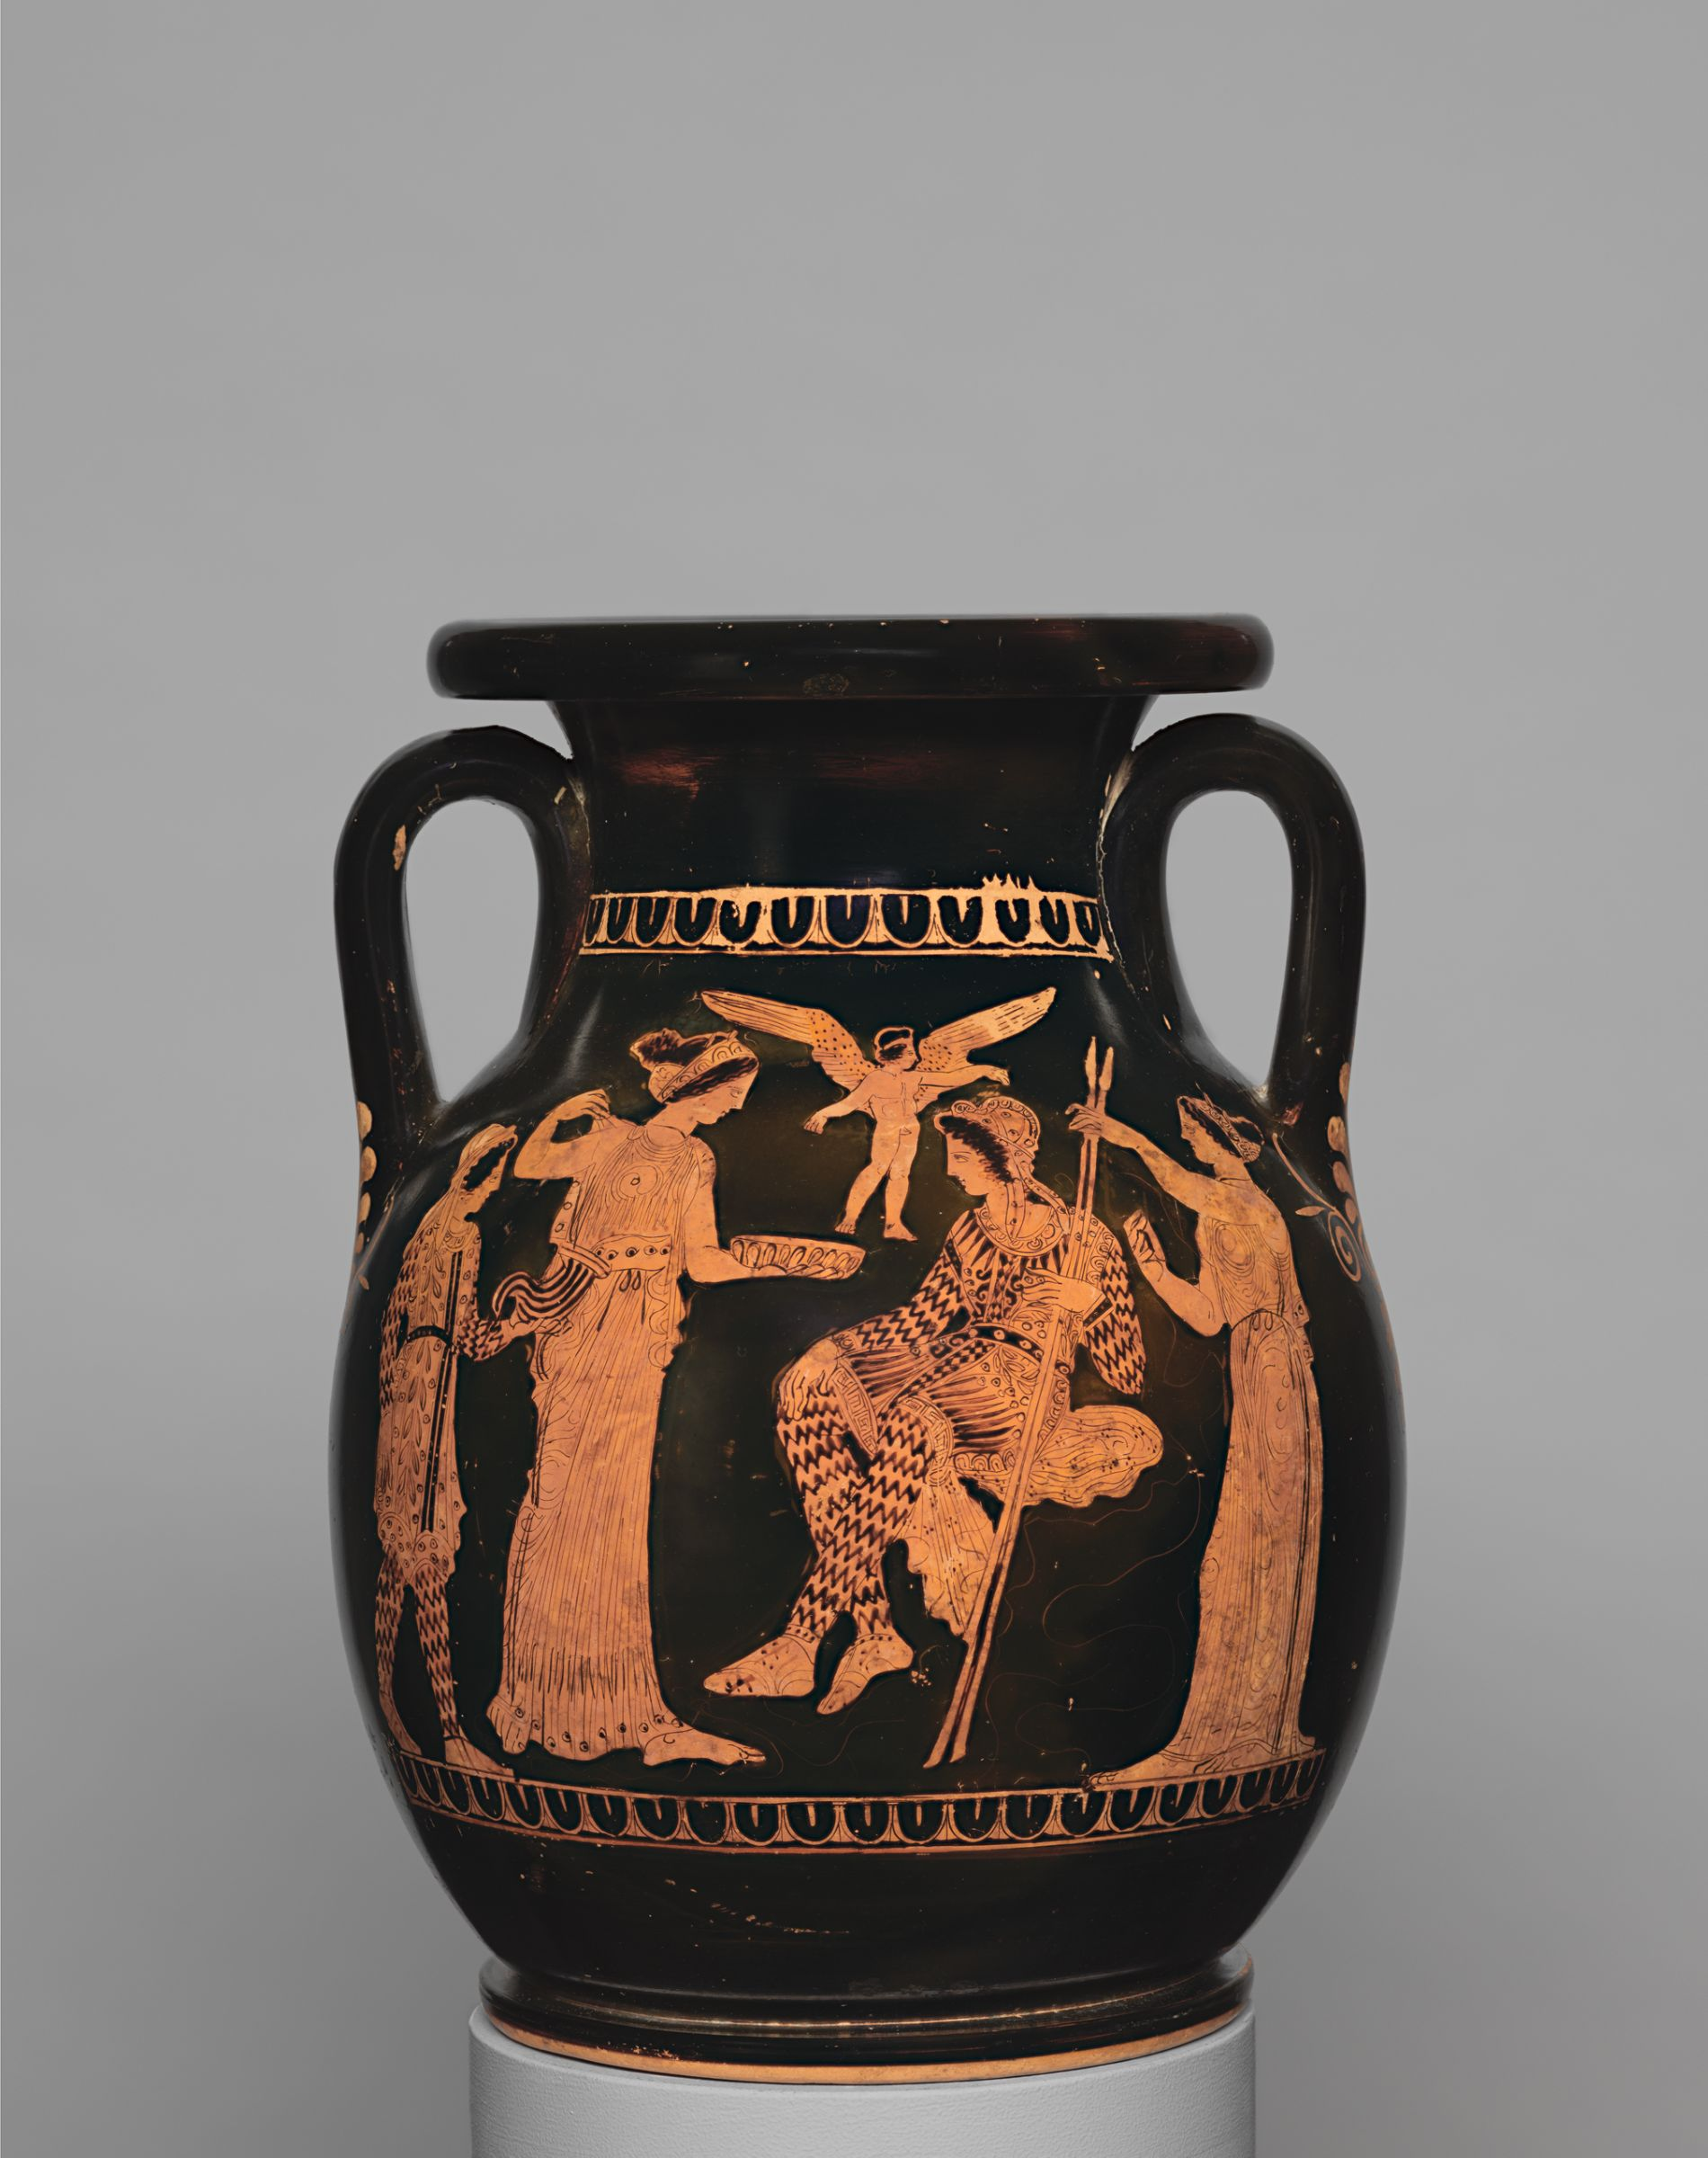 Pelike depicting Helen and Paris, attributed to the Painter of Louvre G 539, Greek, Attic, 420–400 BCE. Terracotta, red-figure technique. Harvard Art Museums/Arthur M. Sackler Museum, Bequest of Joseph C. Hoppin, 1925.30.46.